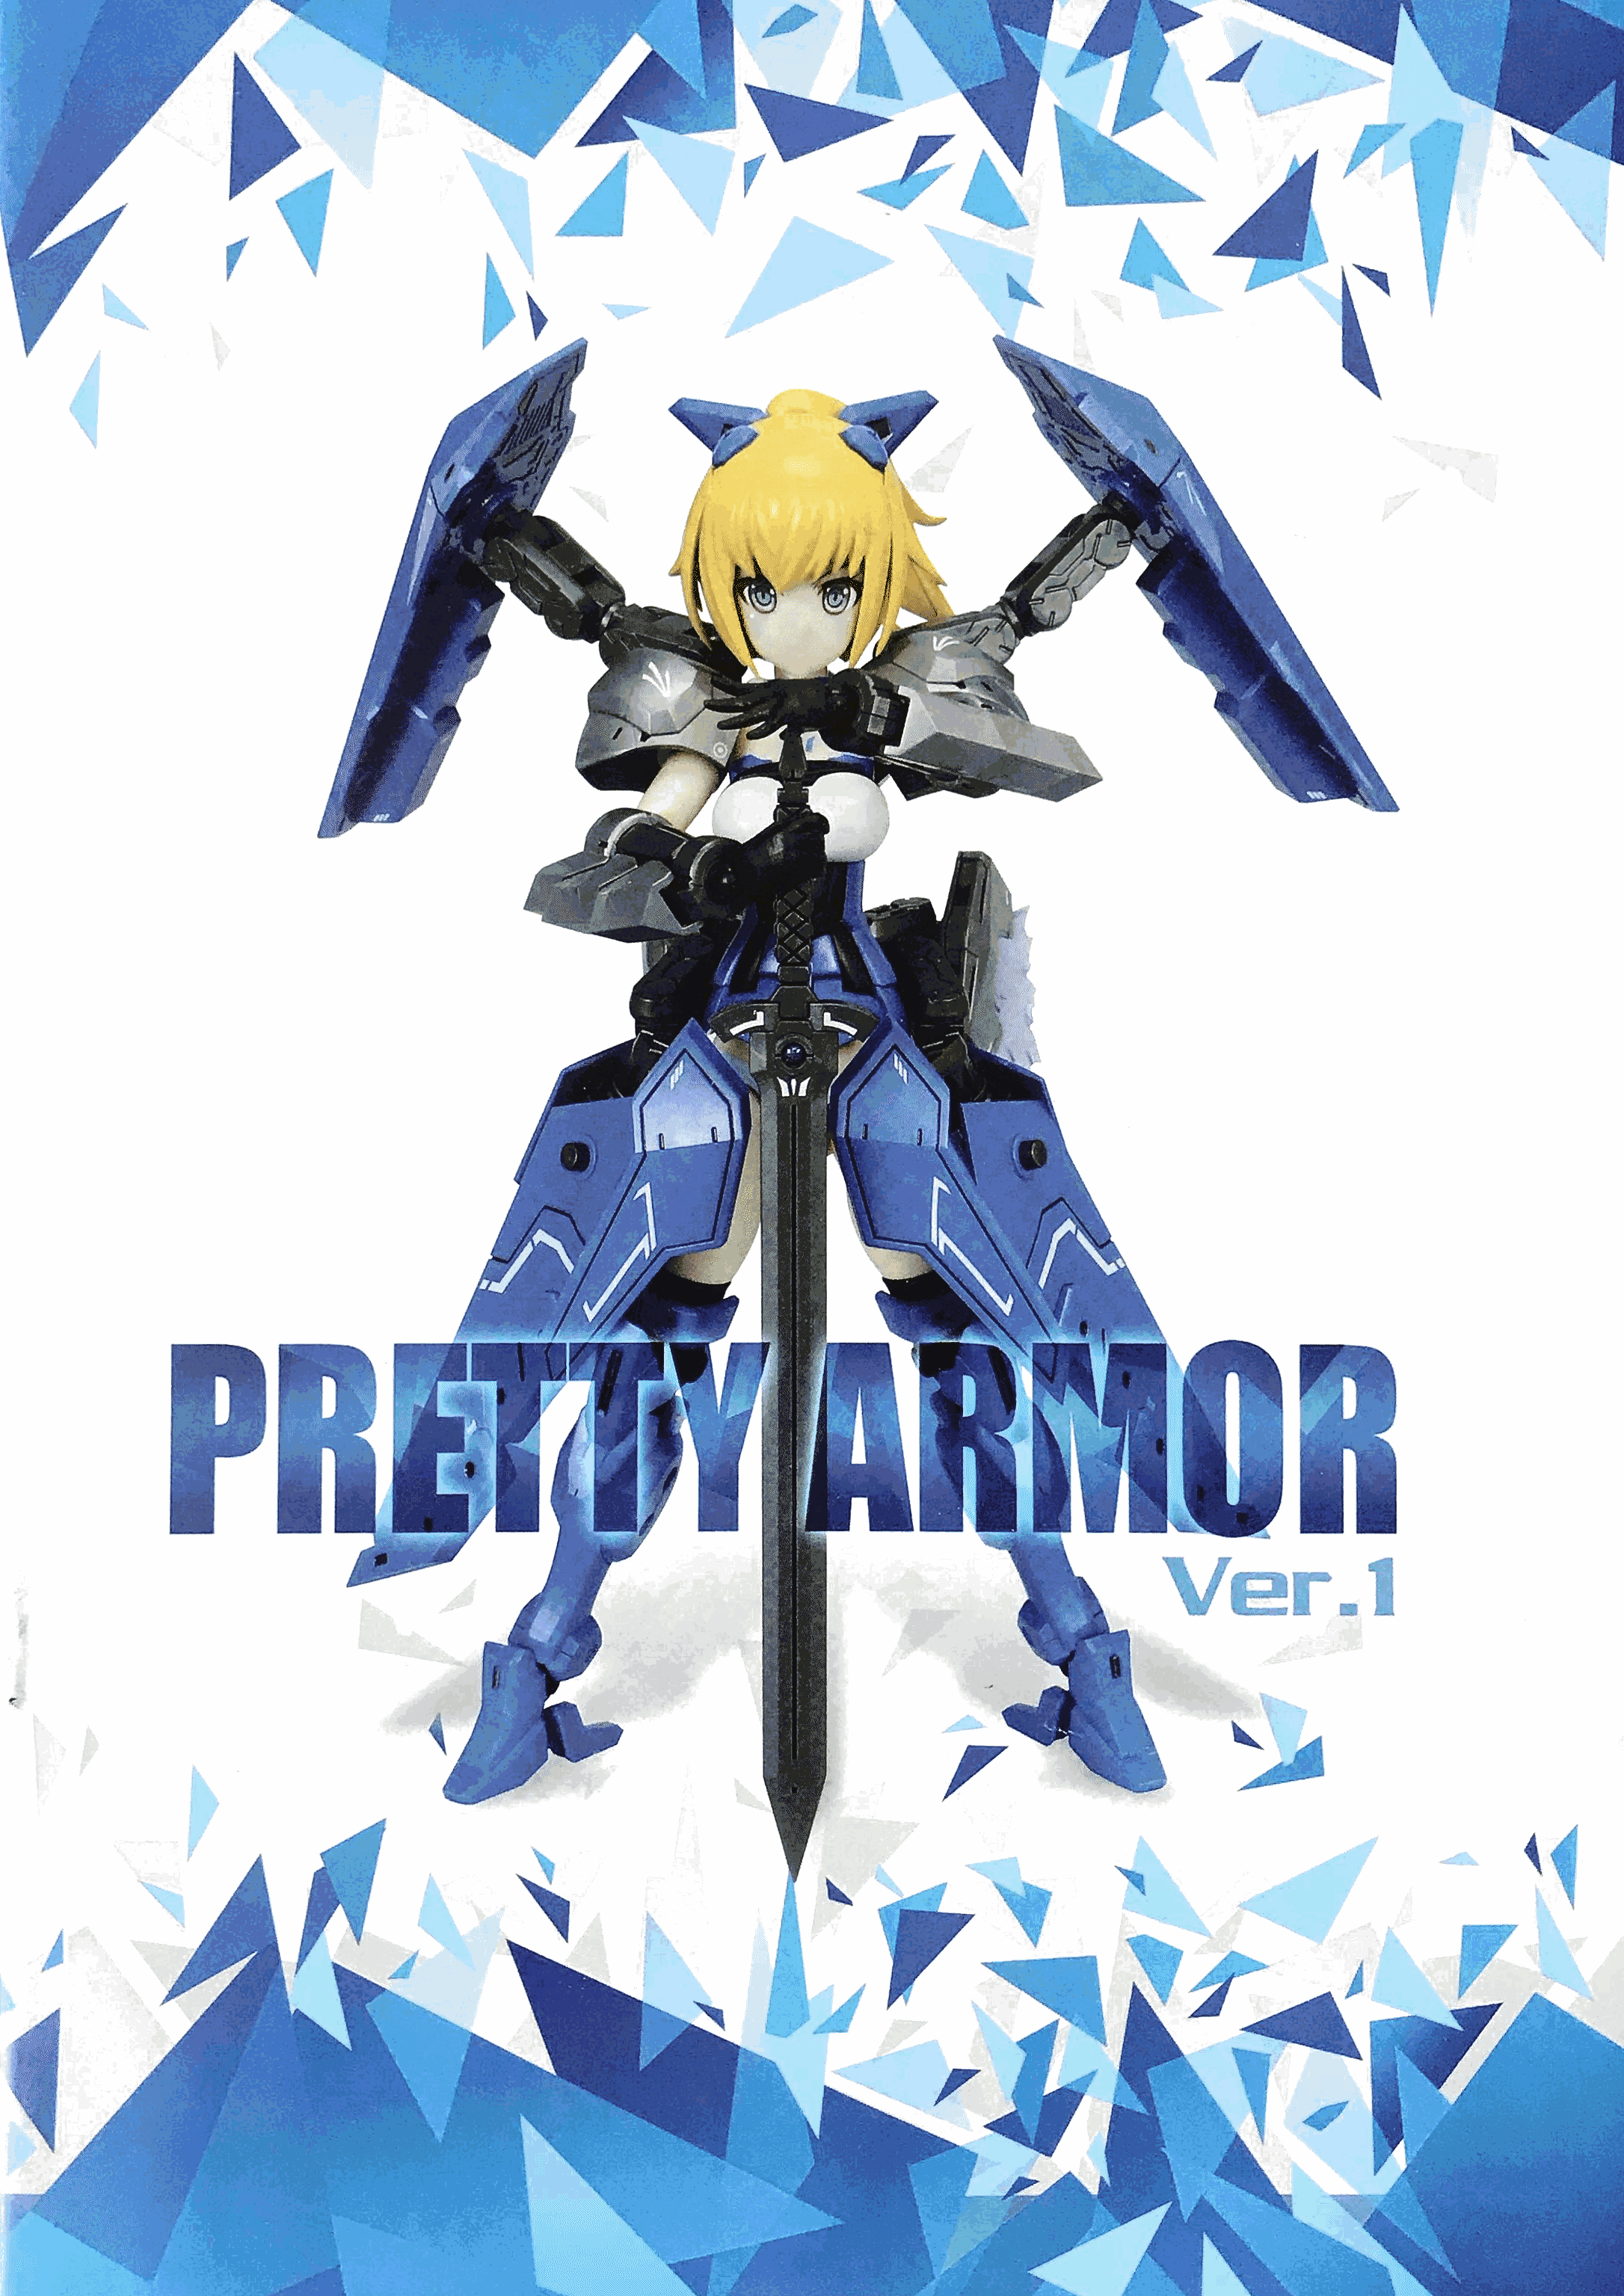 s262_pretty_armor_ver1_1.png